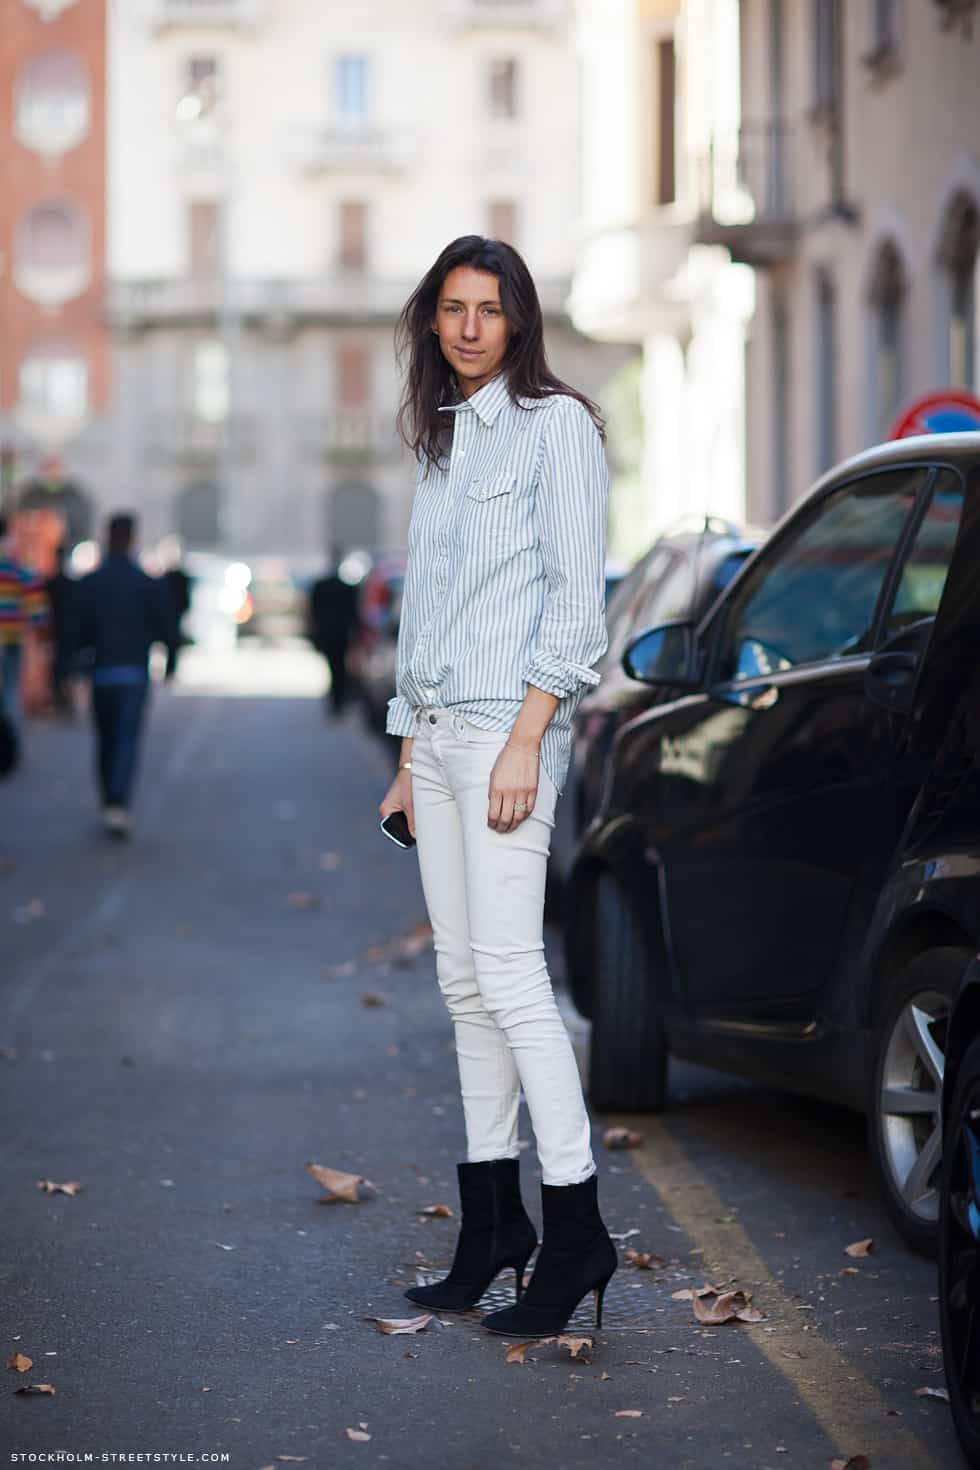 White Jeans In Winter What Do You Think The Fashion